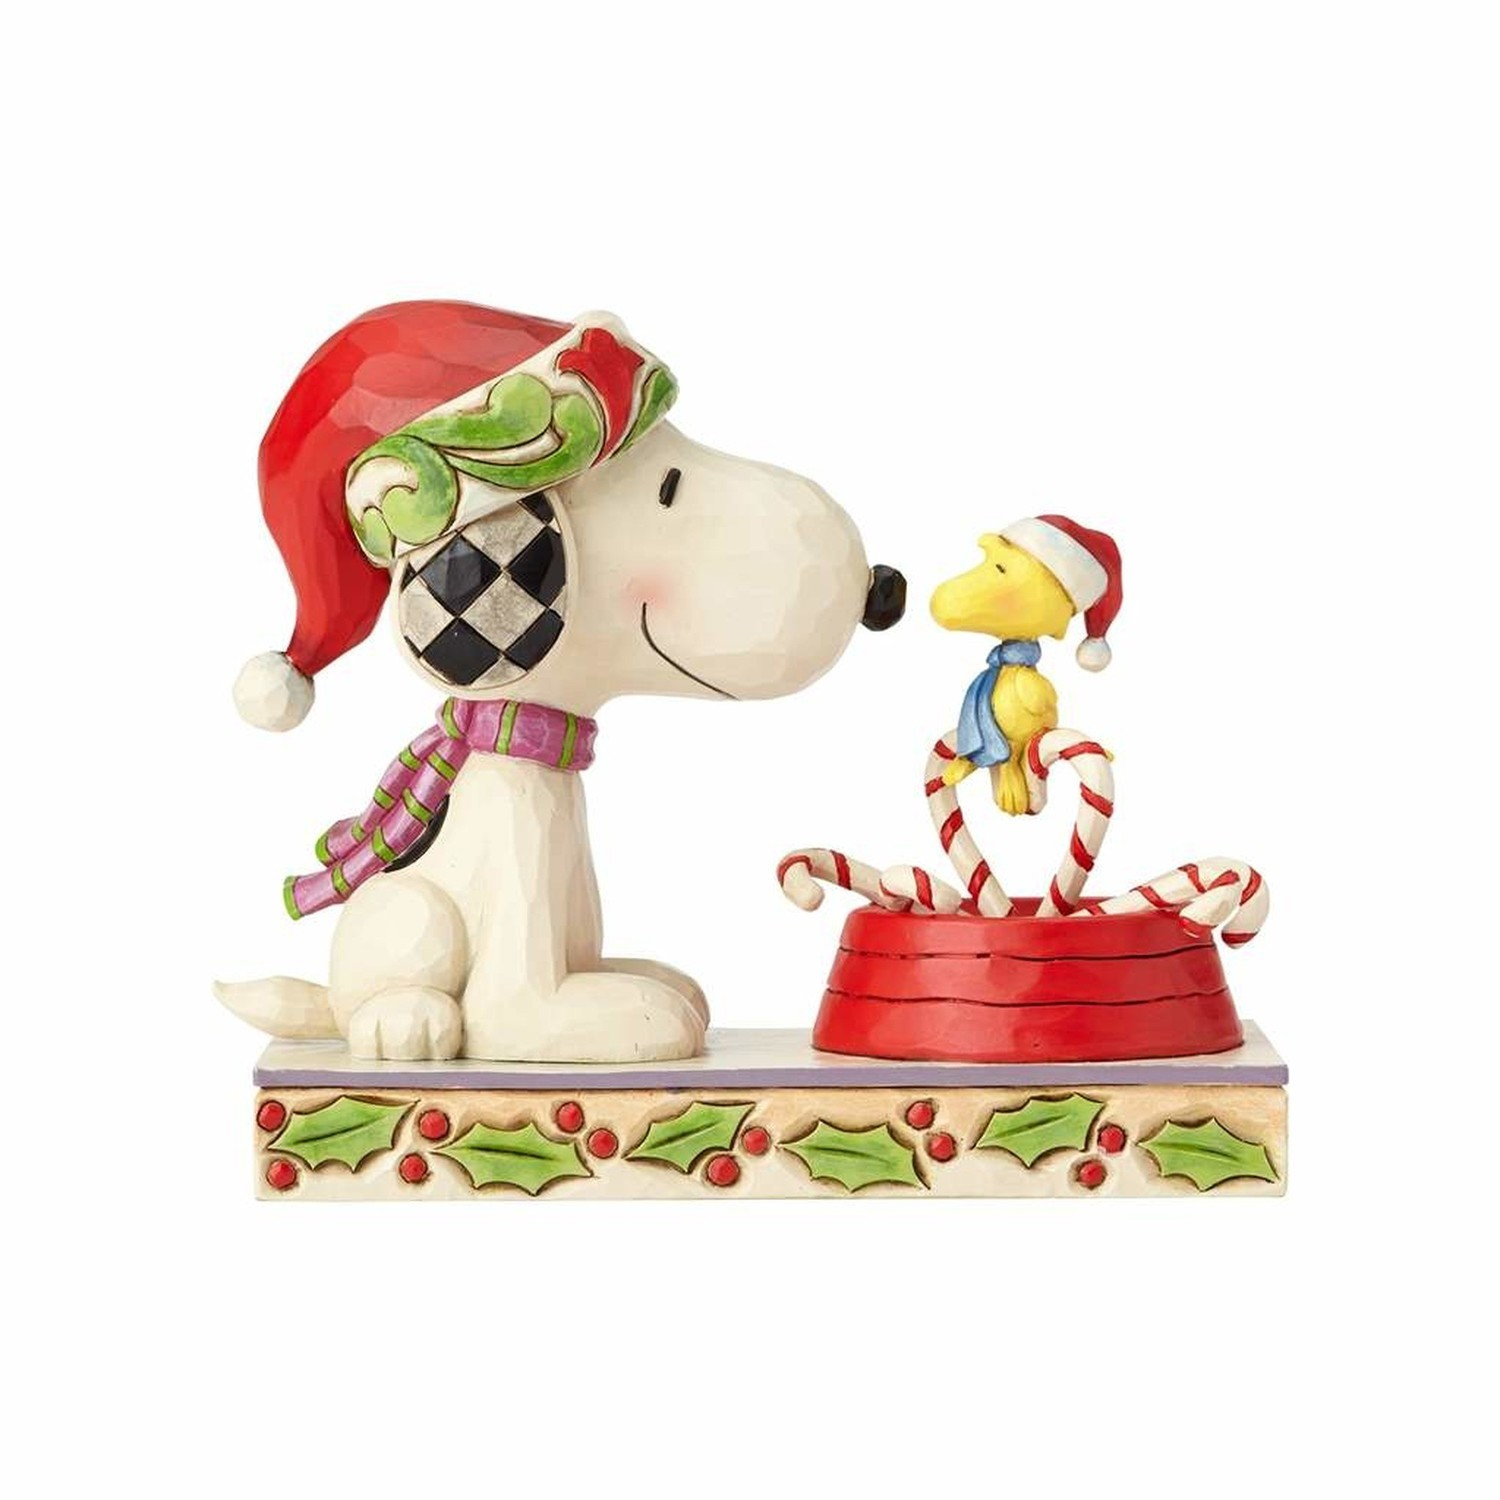 Snoopy And Woodstock Christmas Images.Candy Cane Christmas Snoopy Woodstock With Candy Cane